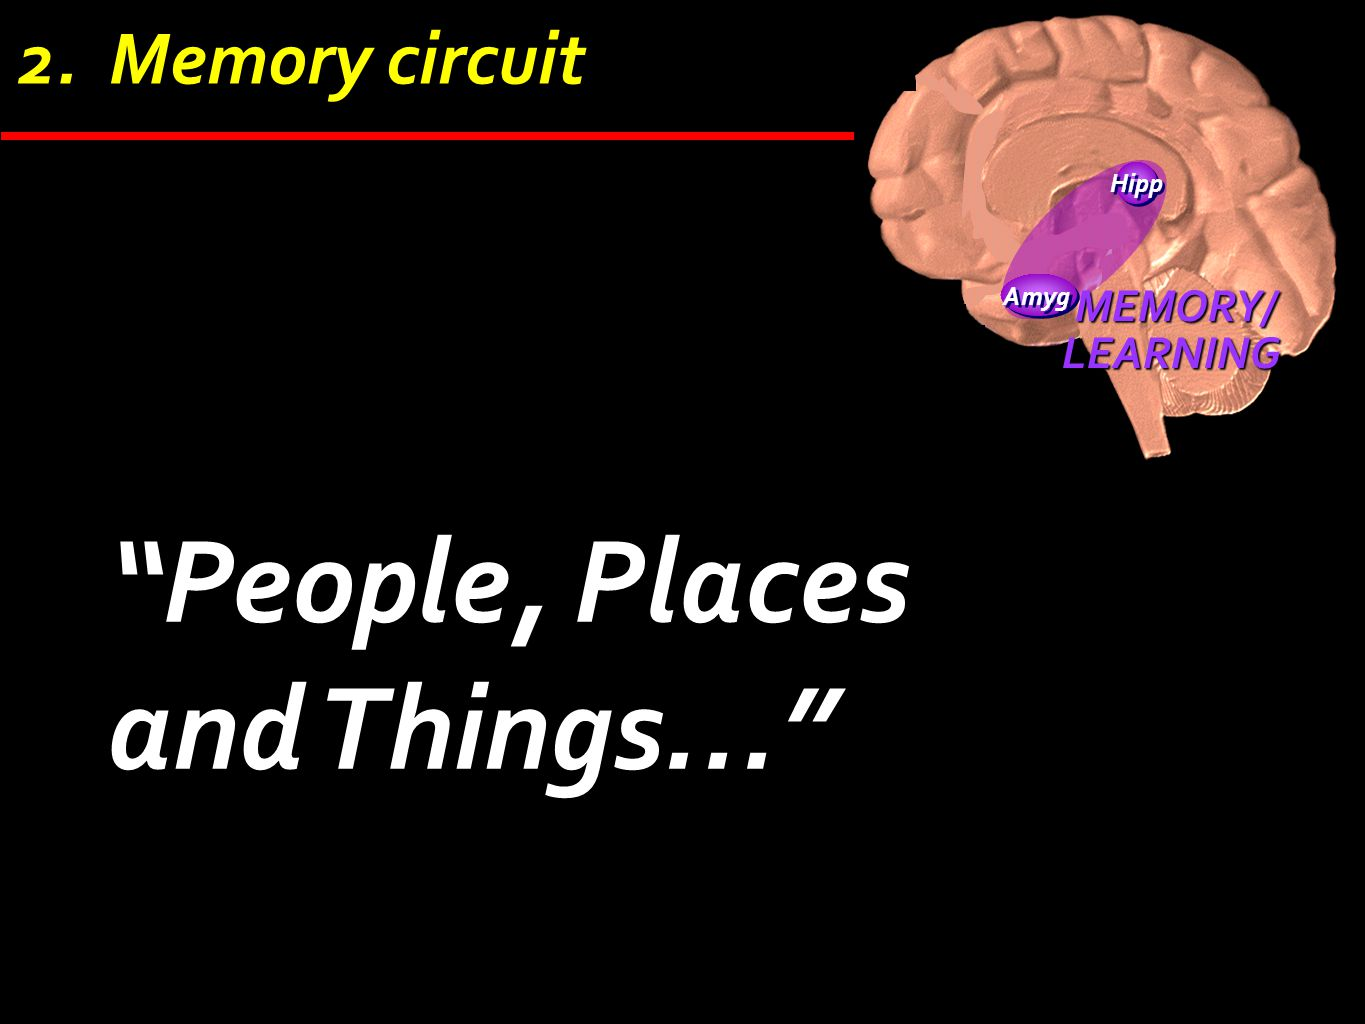 """Hipp Amyg MEMORY/LEARNING 2. Memory circuit """"People, Places and Things…"""""""